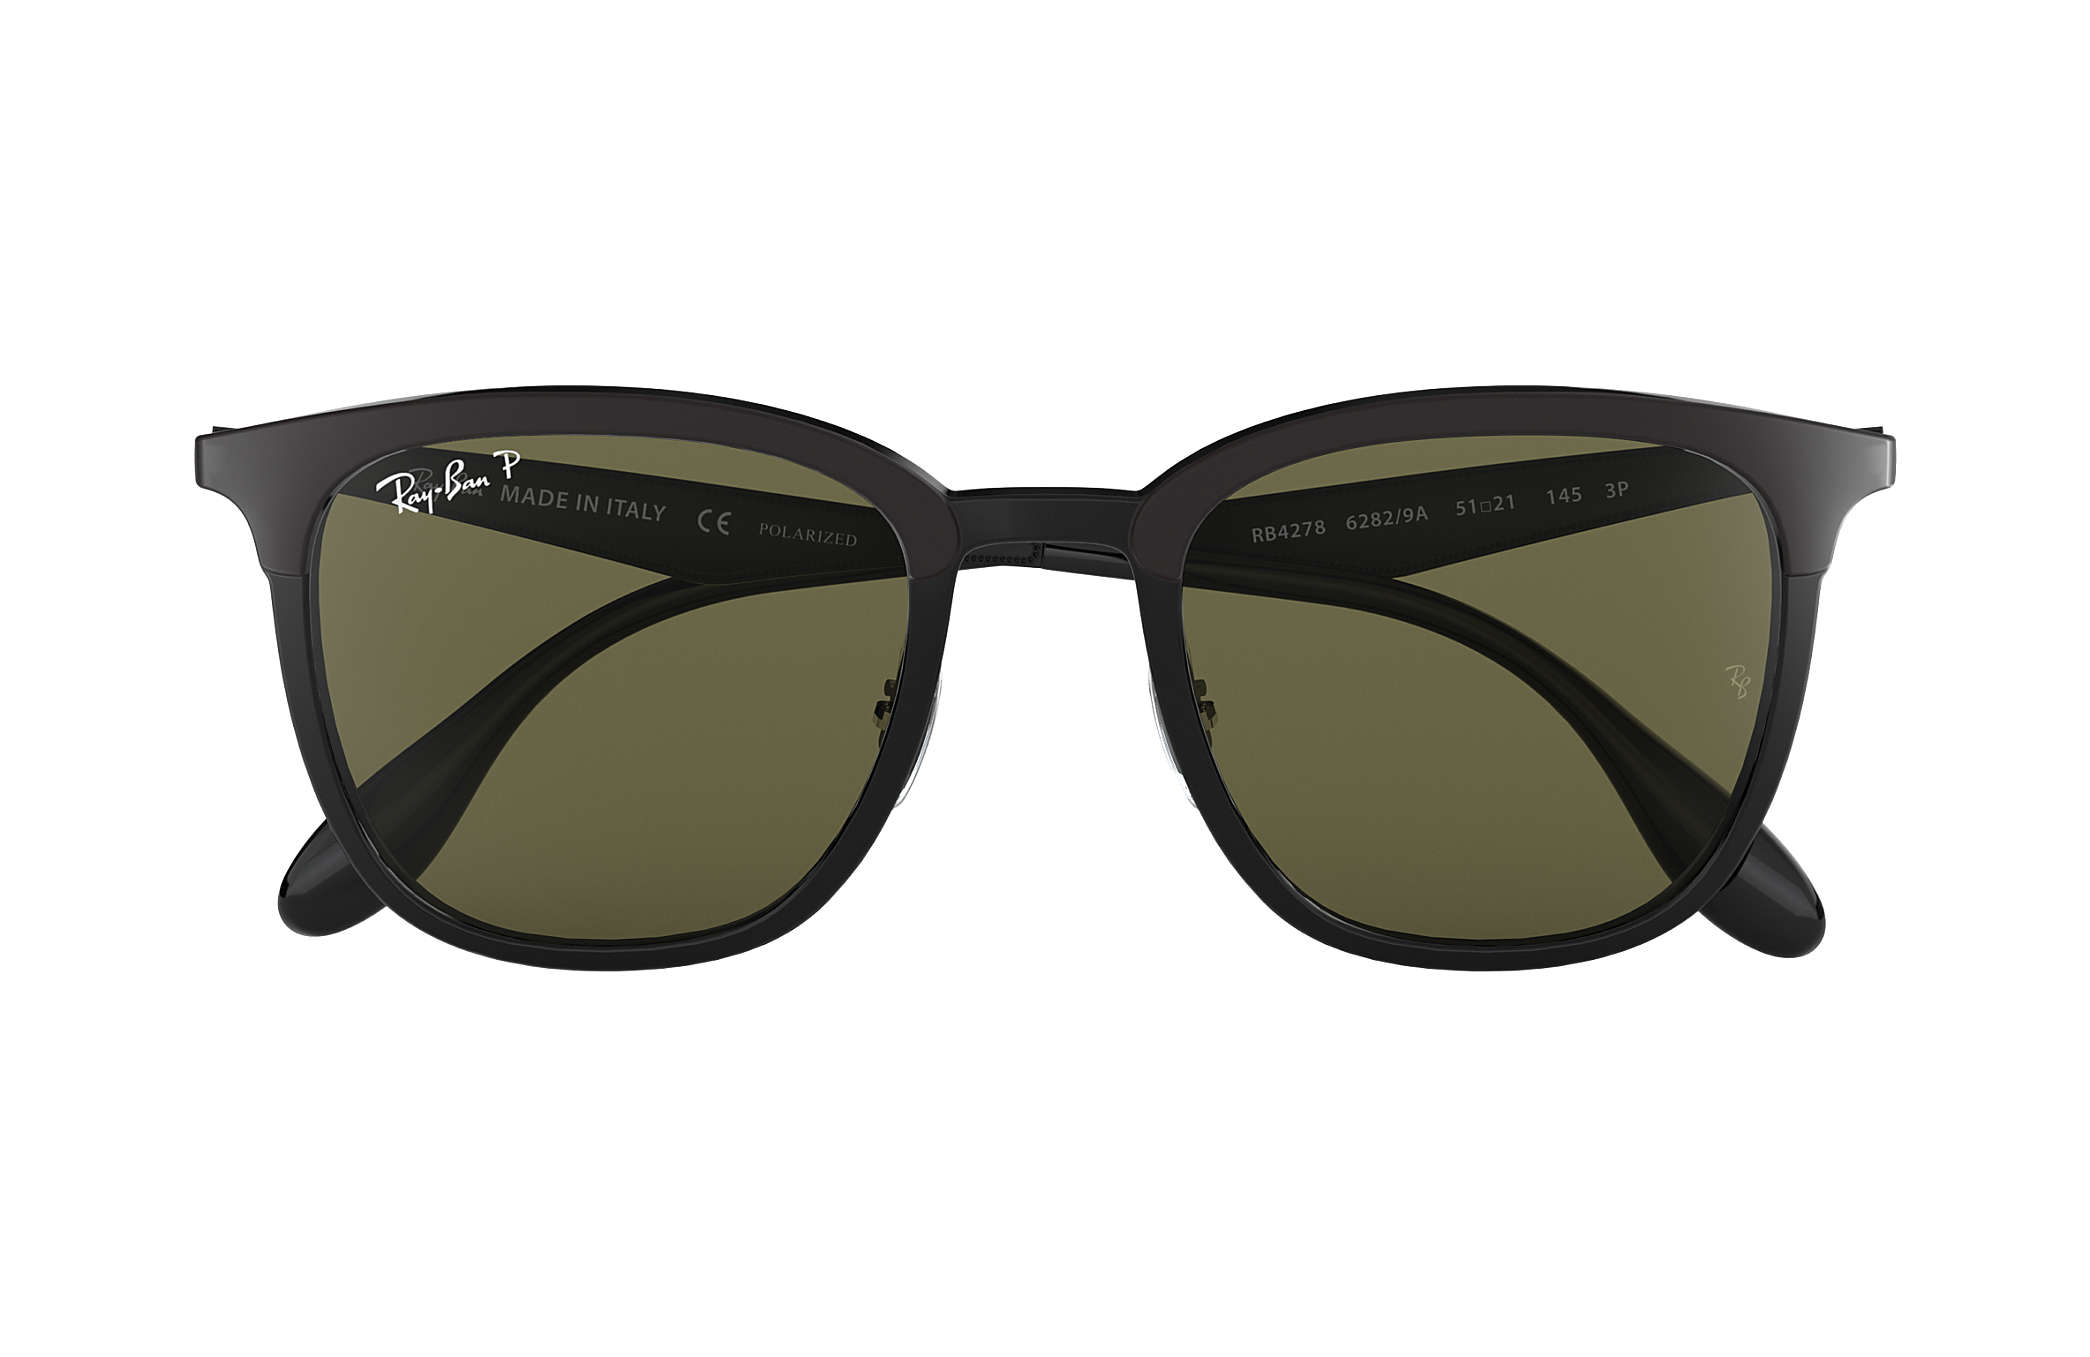 1648591cb64 Ray-Ban RB4278 Black - Injected - Green Polarized Lenses ...